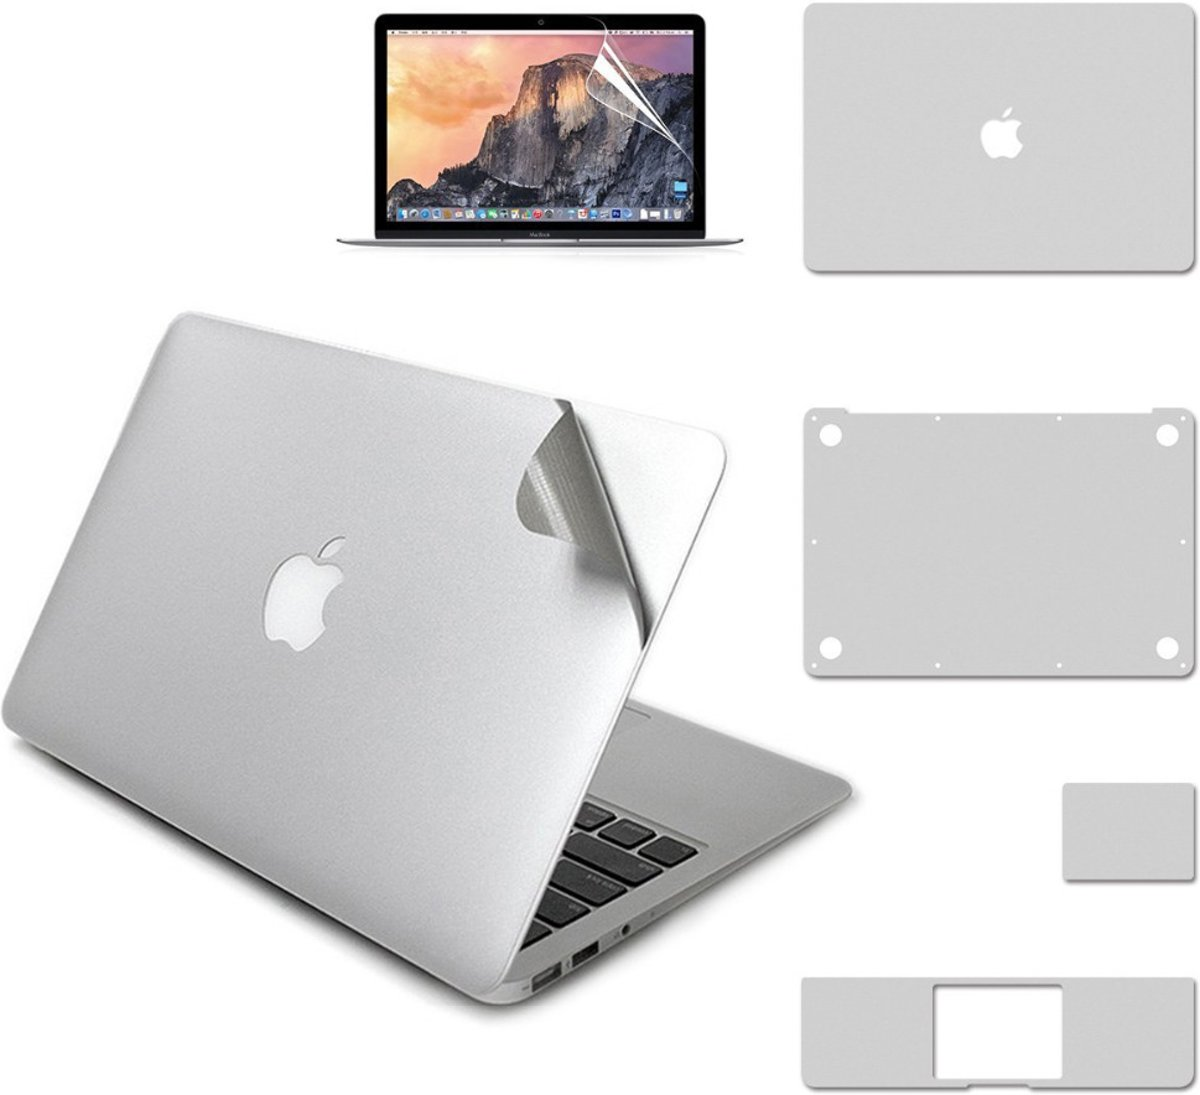 5-in-1 Nano Body Guard Anti Scratch 3M Protector voor Apple MacBook Air 13 inch  - Champagne Goud